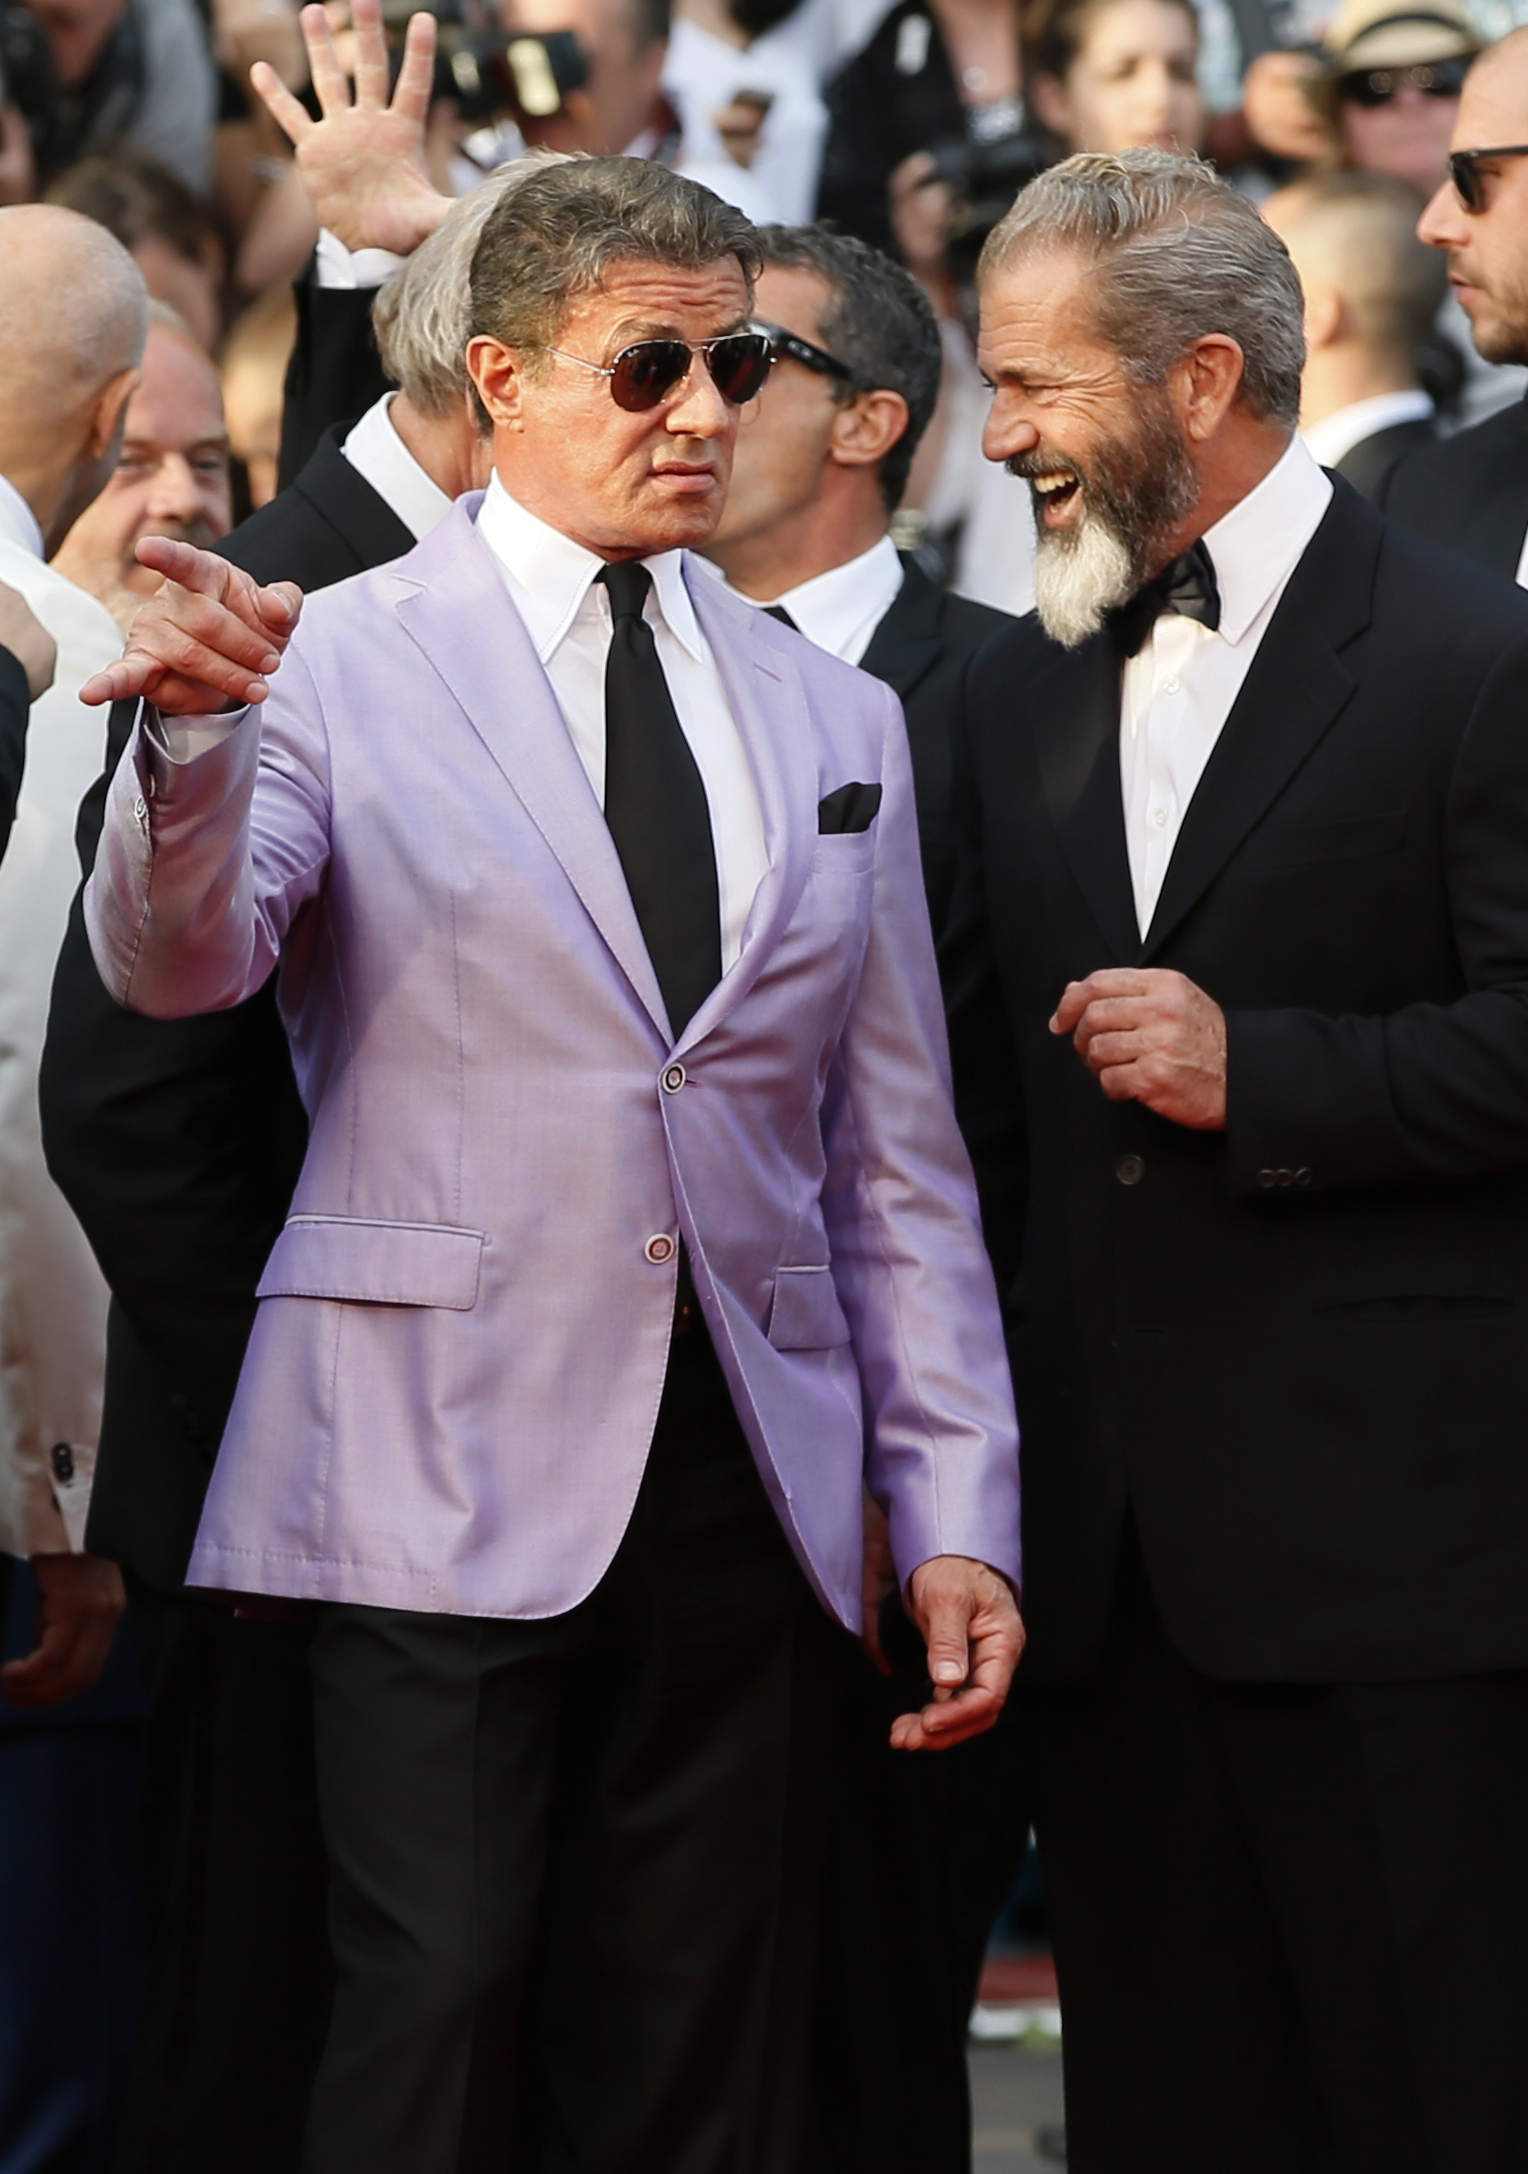 Yo, how you doin'?: Actors Sylvester Stallone and Mel Gibson were part of the crowd Sunday as they arrived at the 67th international film festival in Cannes, France.